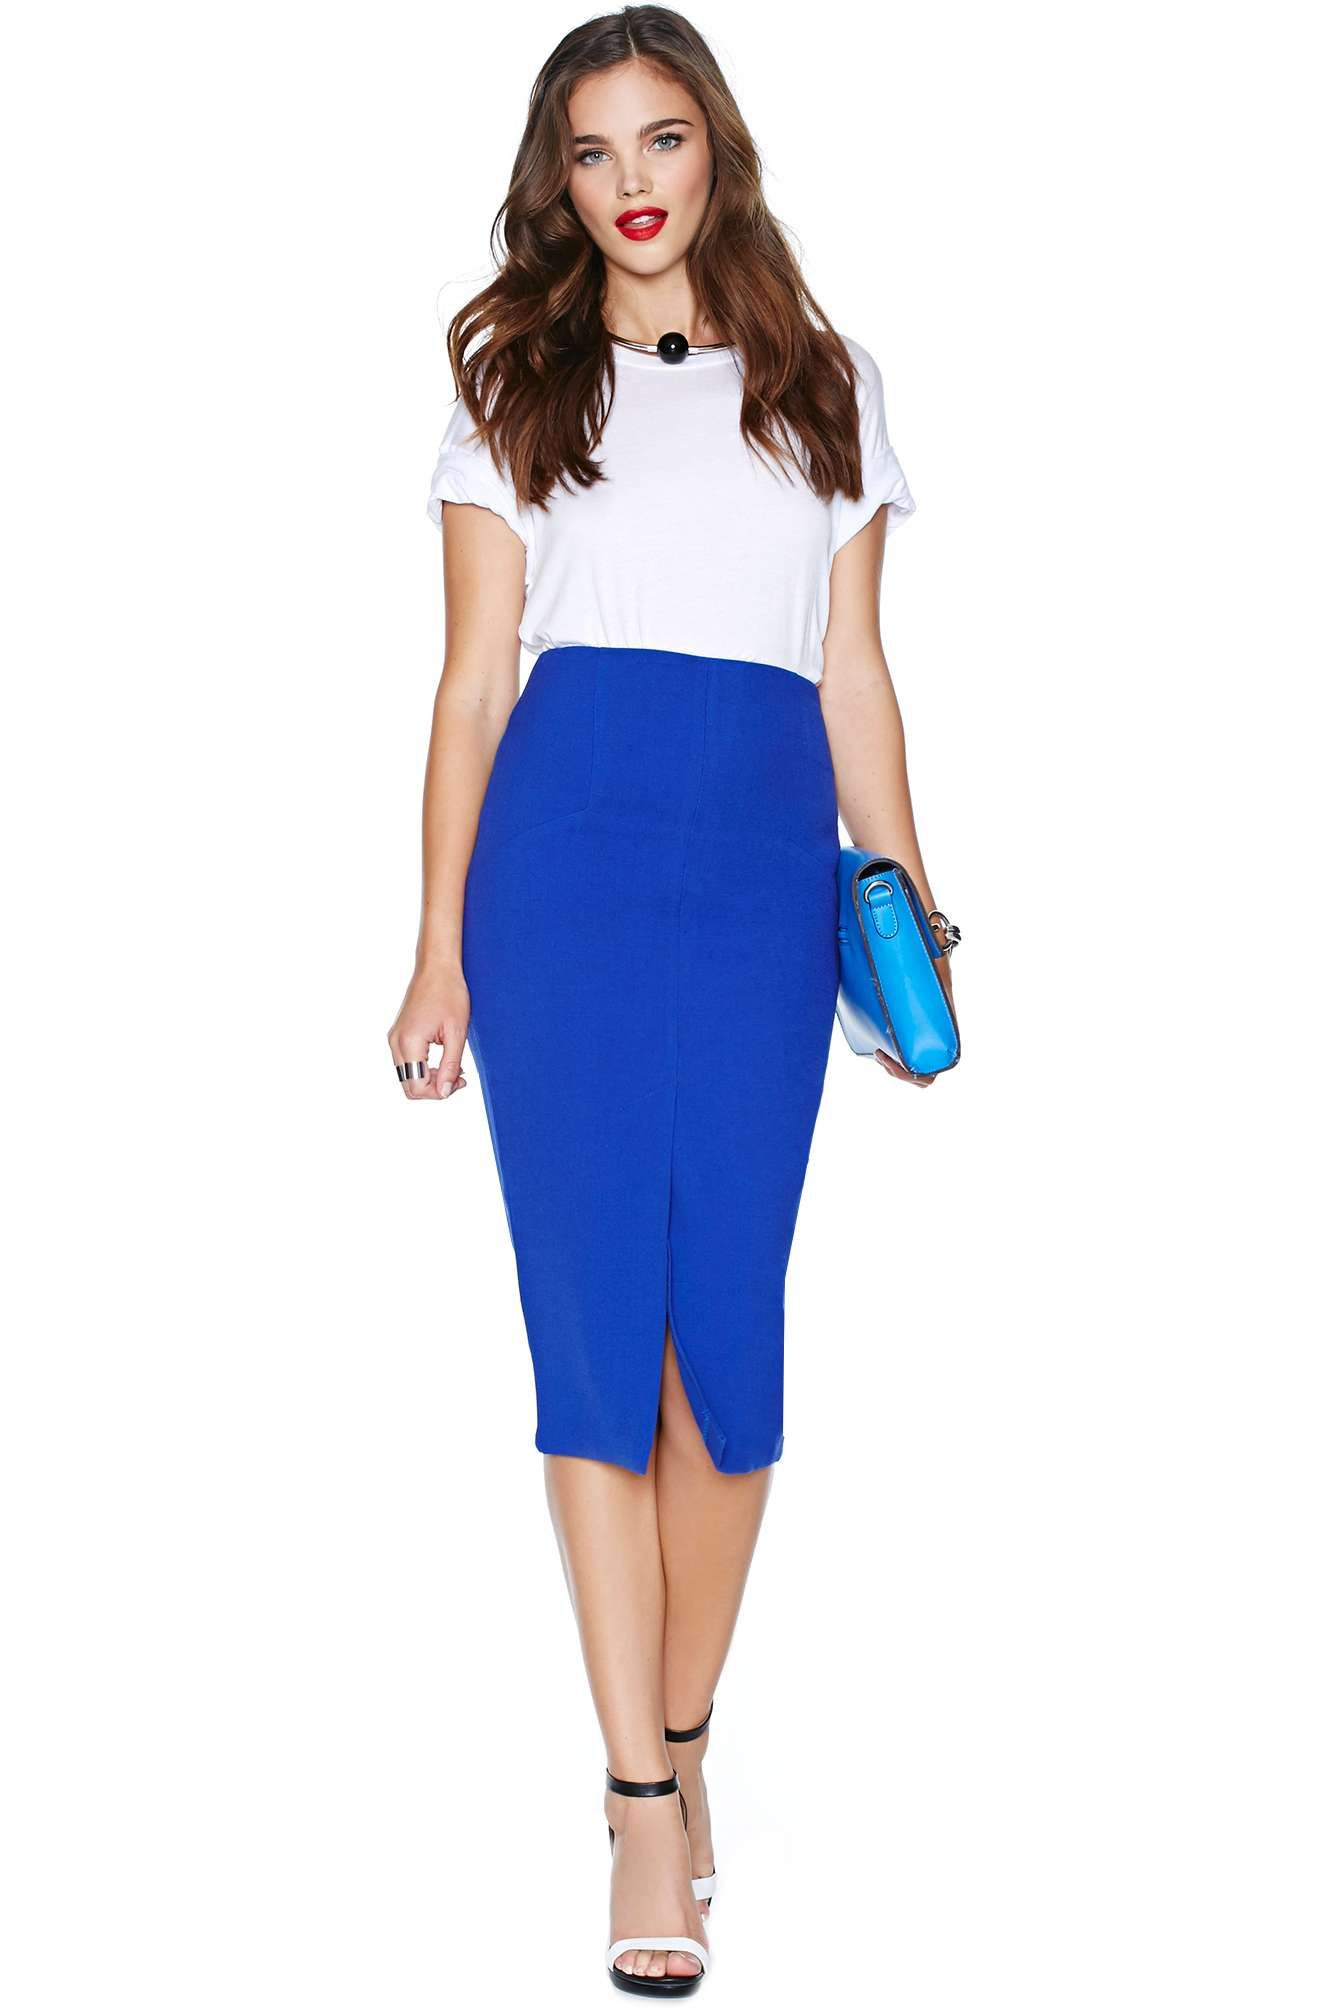 8d09eb7b3b790b You CAN Wear Slit Skirts To The Office